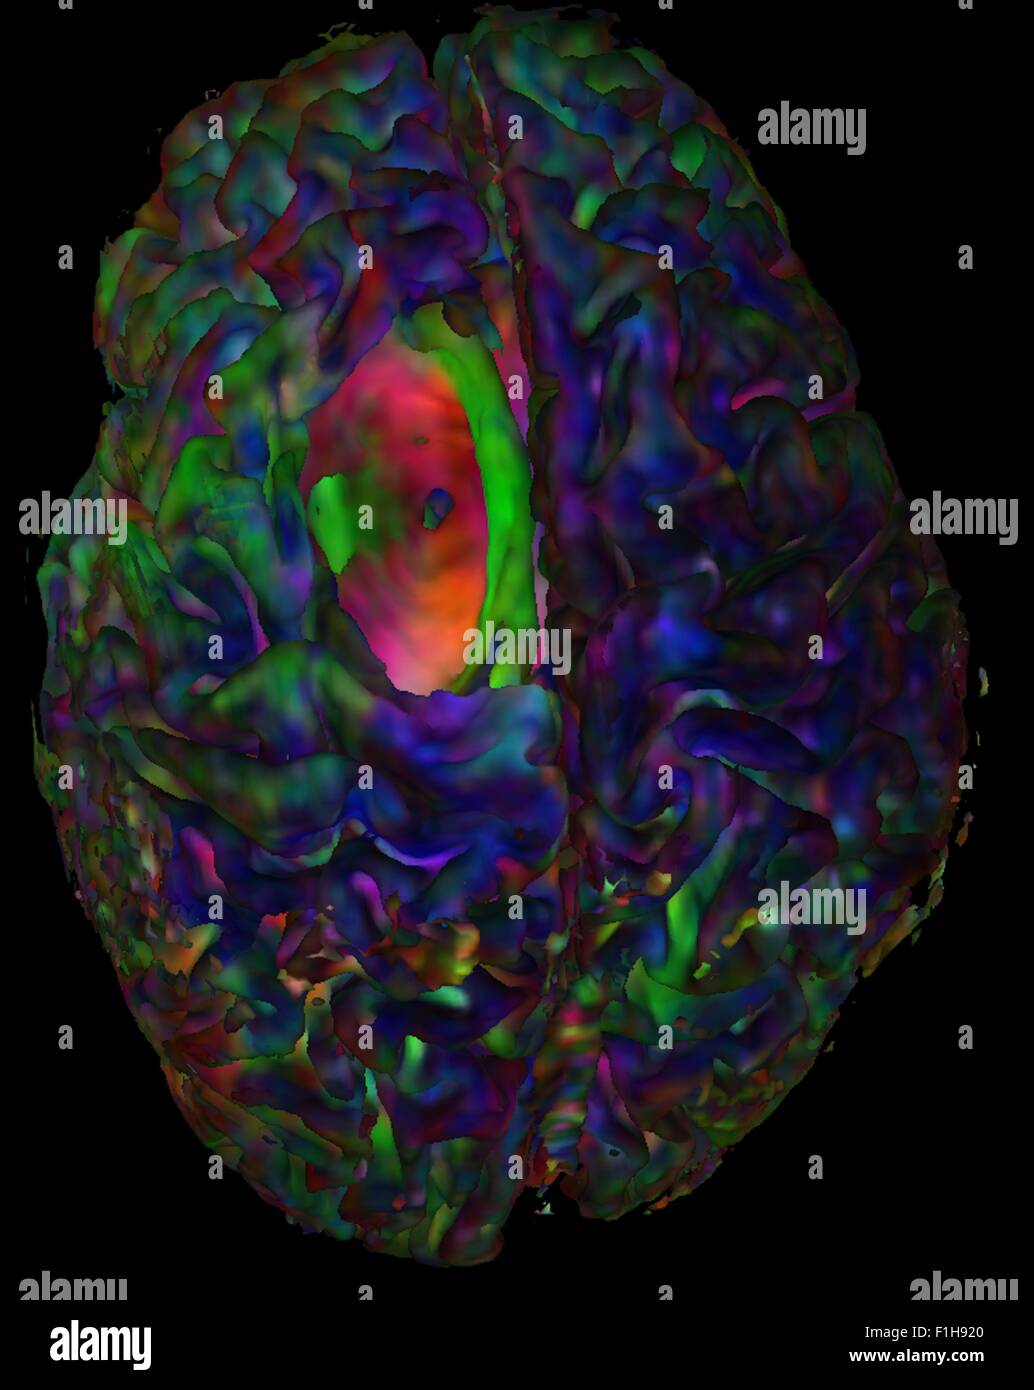 Top view cortical mesh colored diffusion orientation Red-Green-Blue tumor cavity showing hole - Stock Image